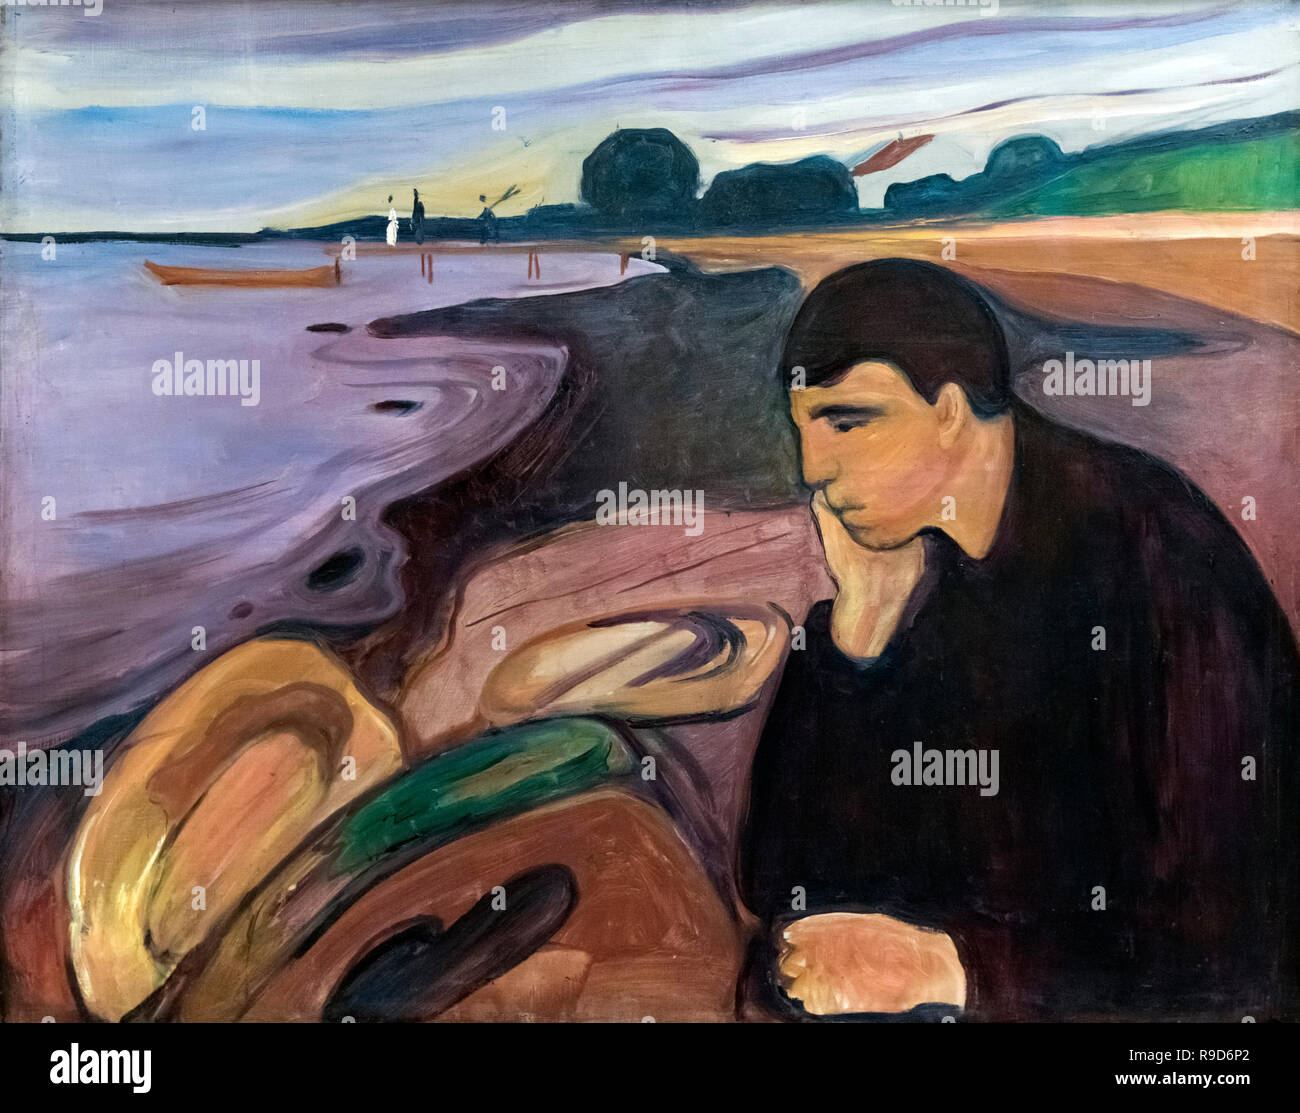 Melancholy by Edvard Munch (1863-1944), oil on canvas, 1894-6 - Stock Image